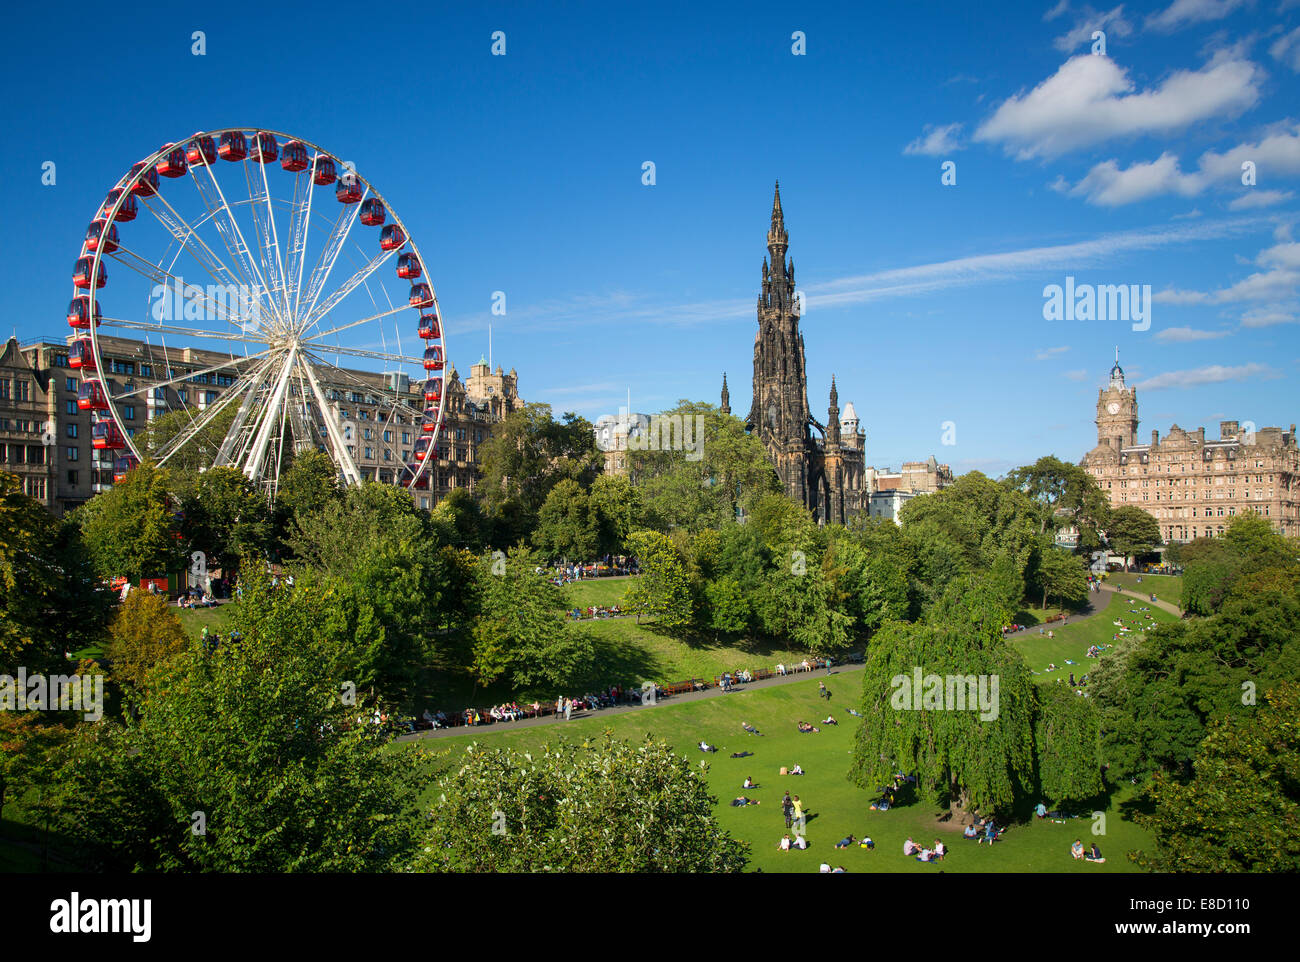 Princes Street Gardens with the Festival Wheel and Sir Walter Scott memorials, Edinburgh, Scotland - Stock Image